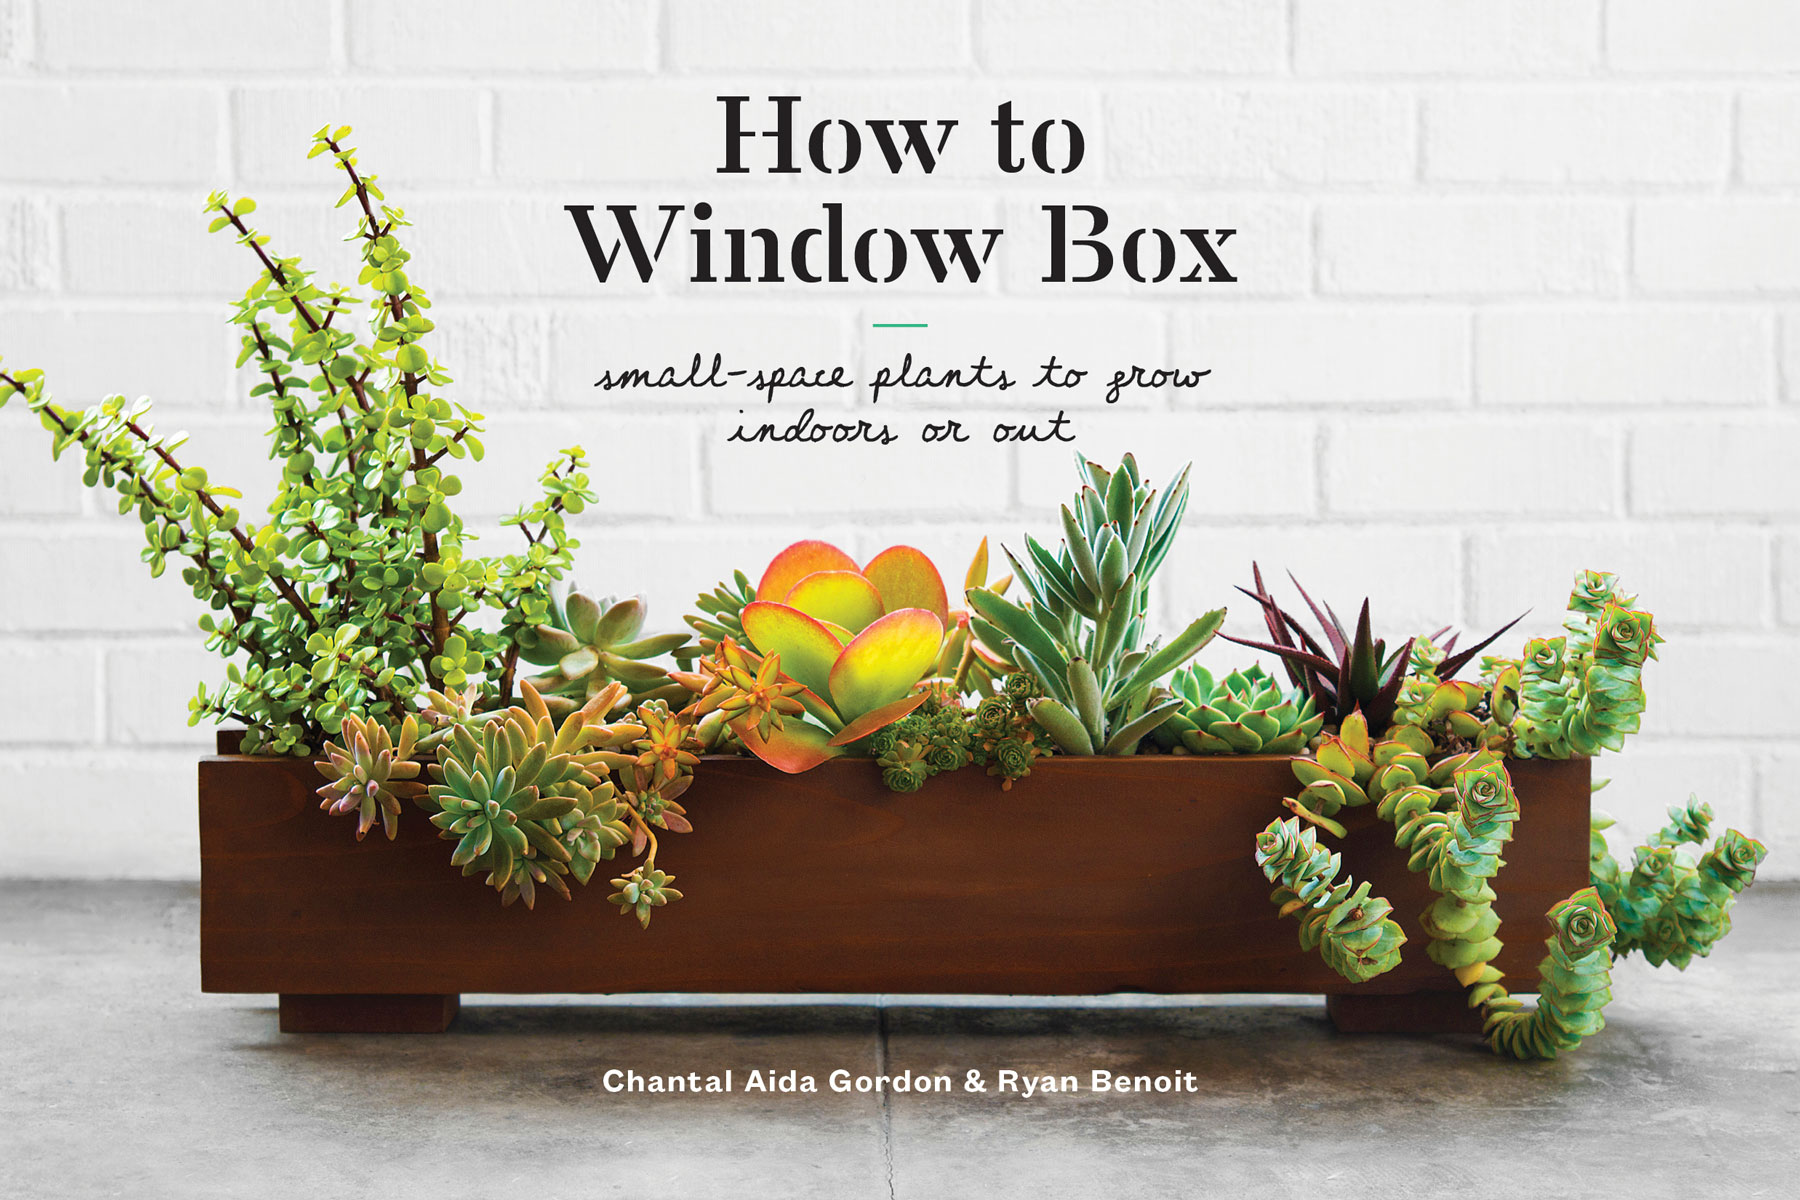 How to Window Box book cover